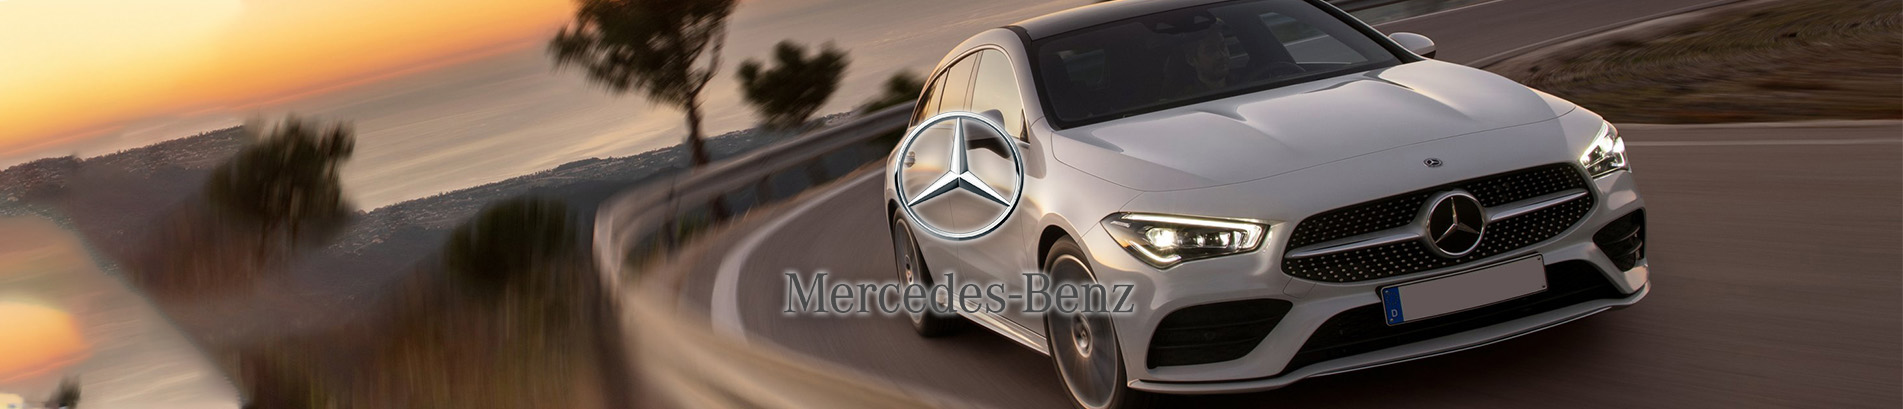 mercedesbenz_part